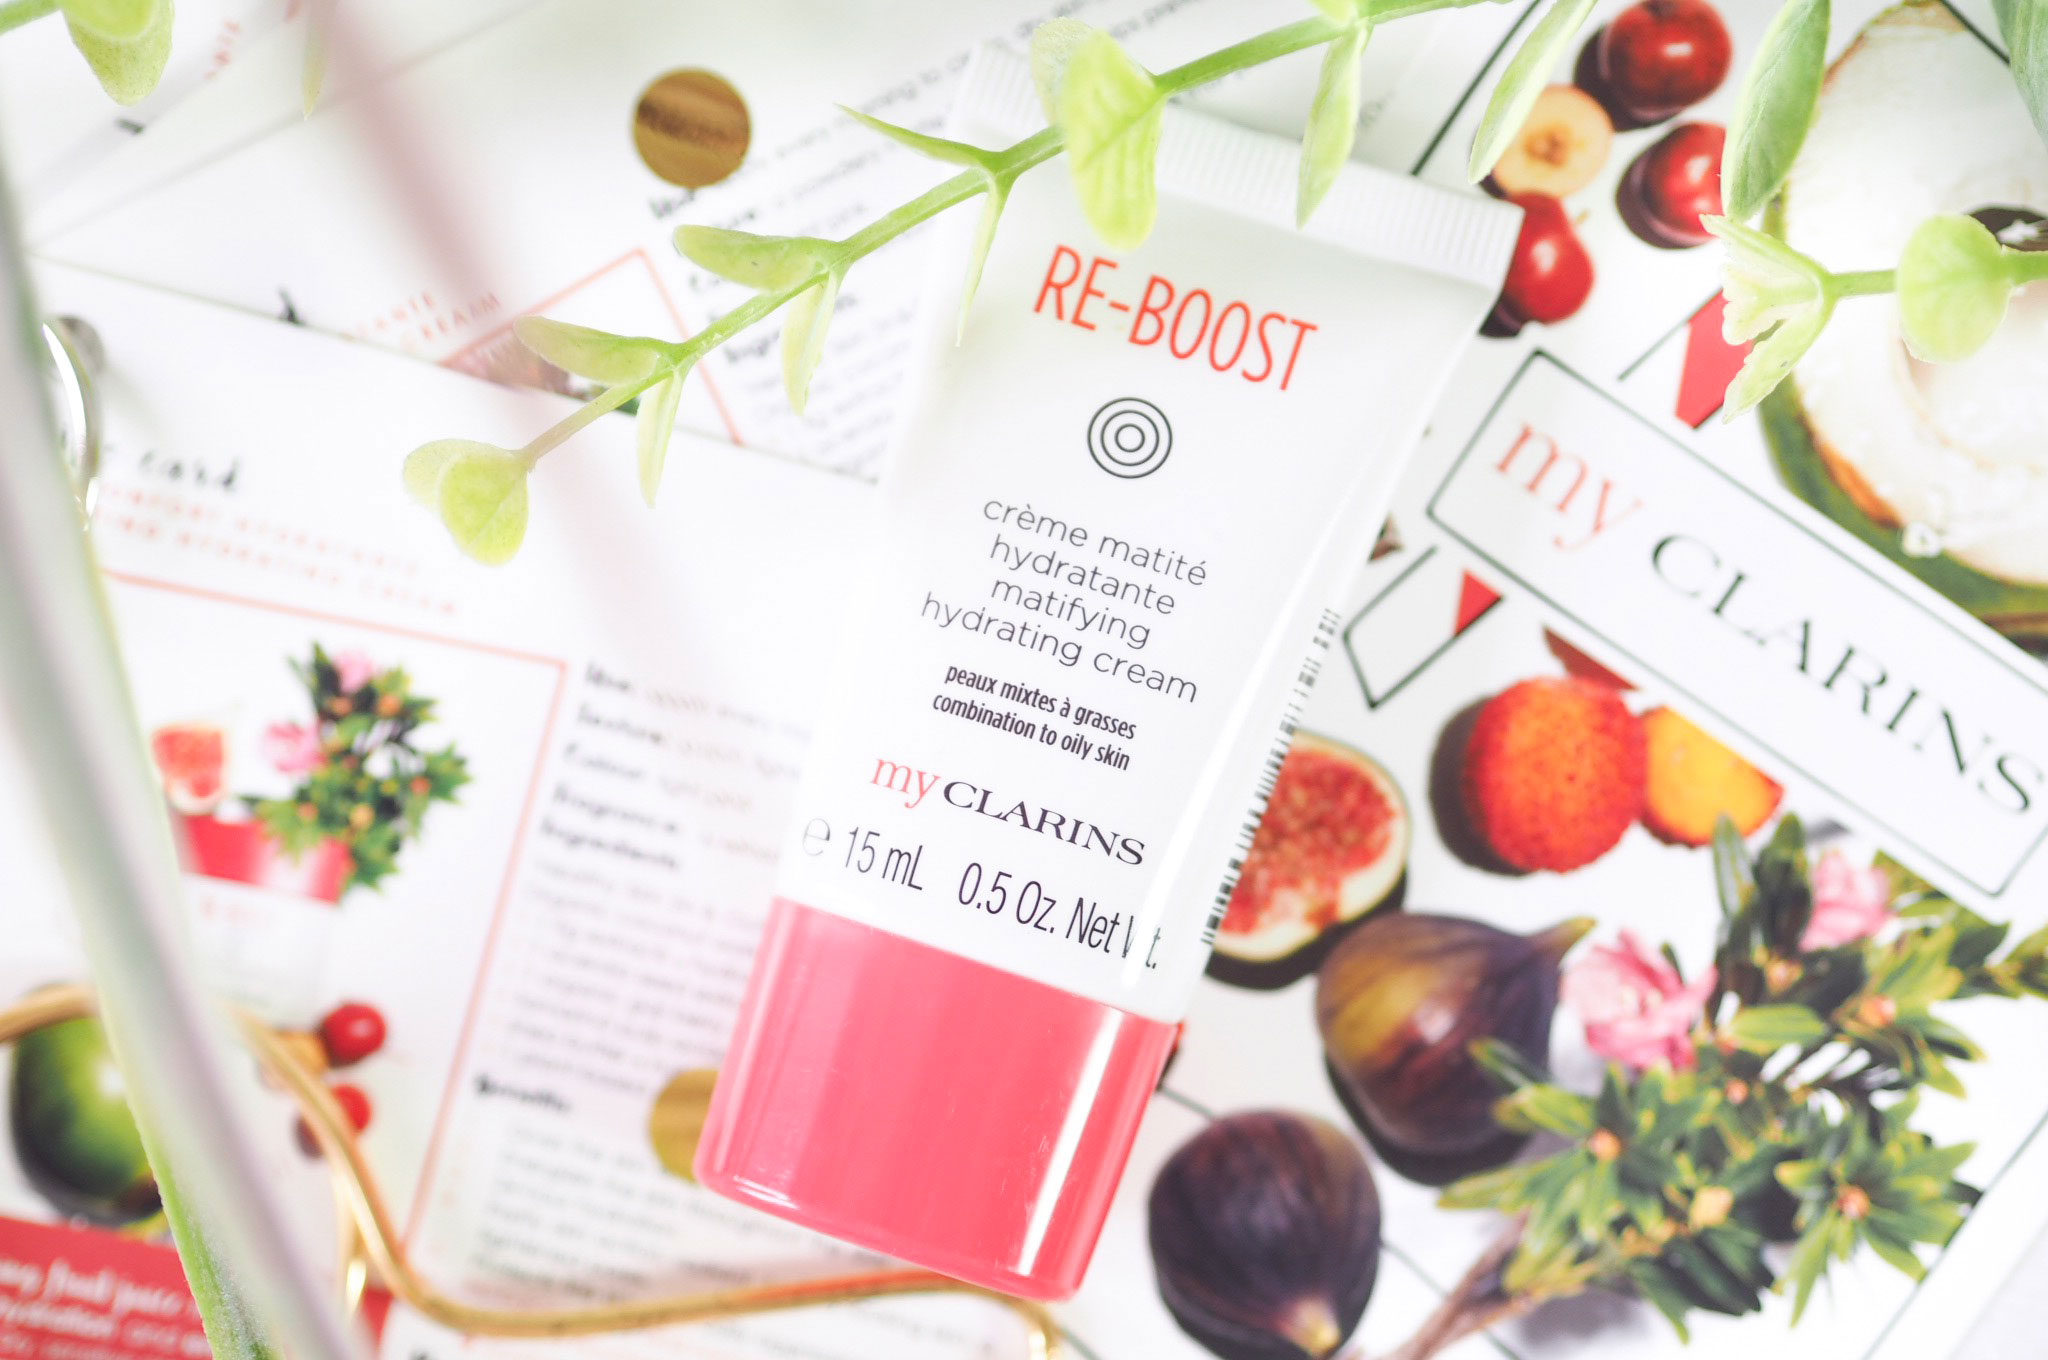 My Clarins Re-Boost Matifying Hydrating Cream Review